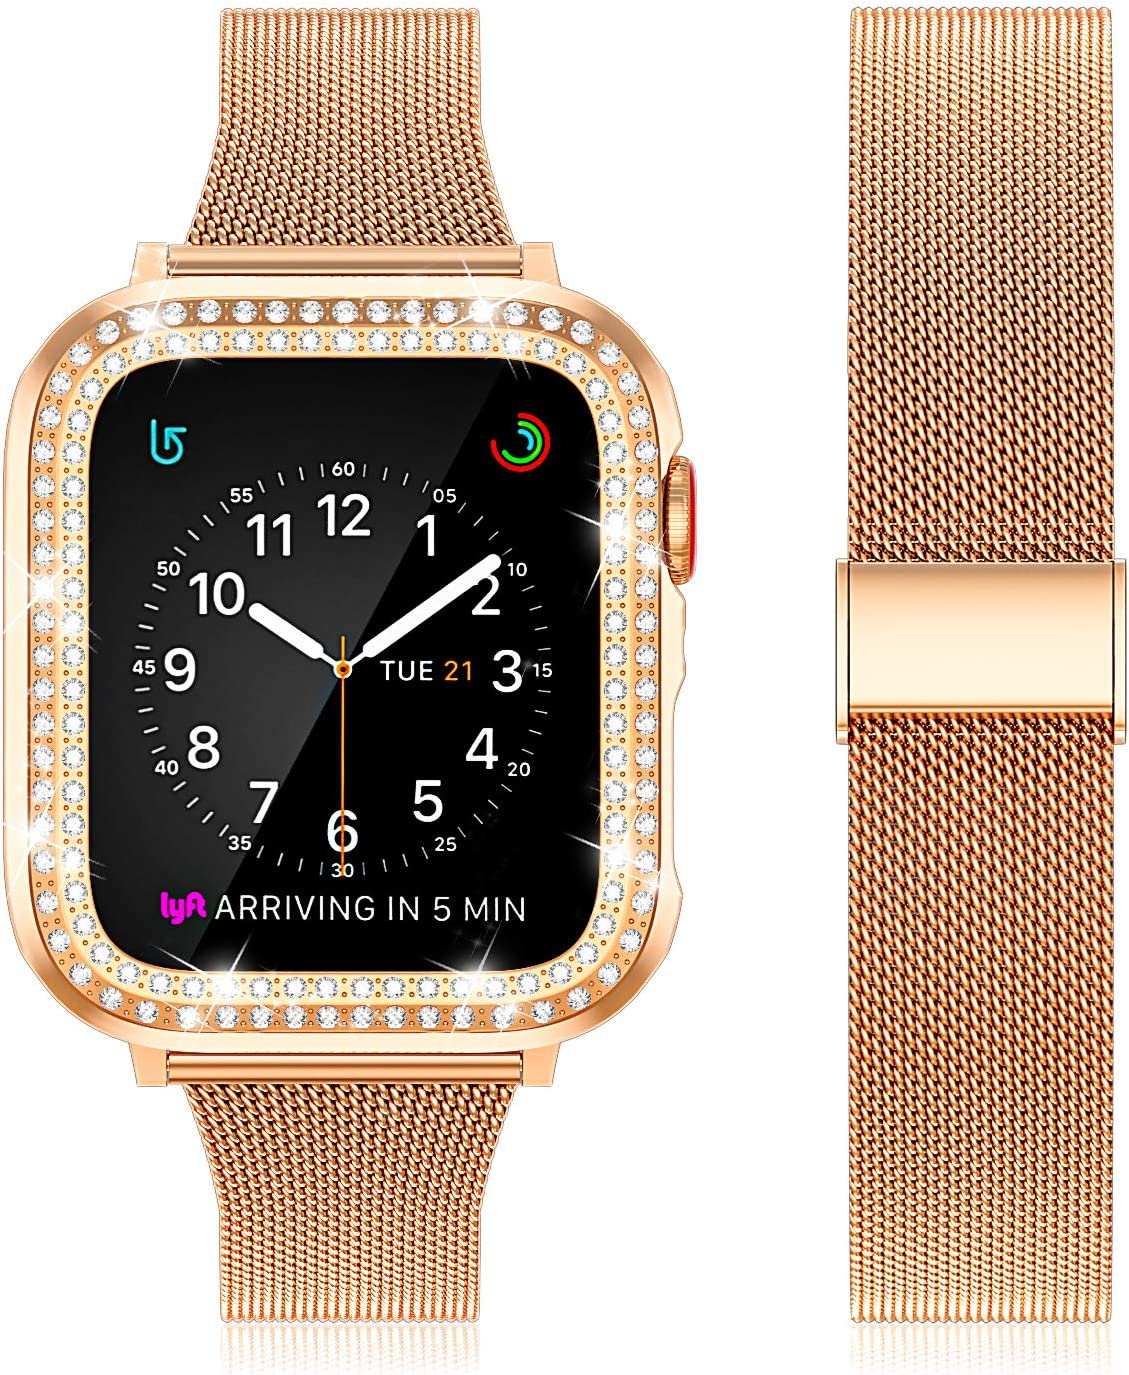 Beuxece Stainless Steel Mesh Band Compatible with Apple Watch Band Series SE/6/5/4/3/2/1 with Diamond Case, Band Slim Metal for iWatch 38mm 40mm 42mm 44mm Bracelet Replacement,RoseGold,40mm